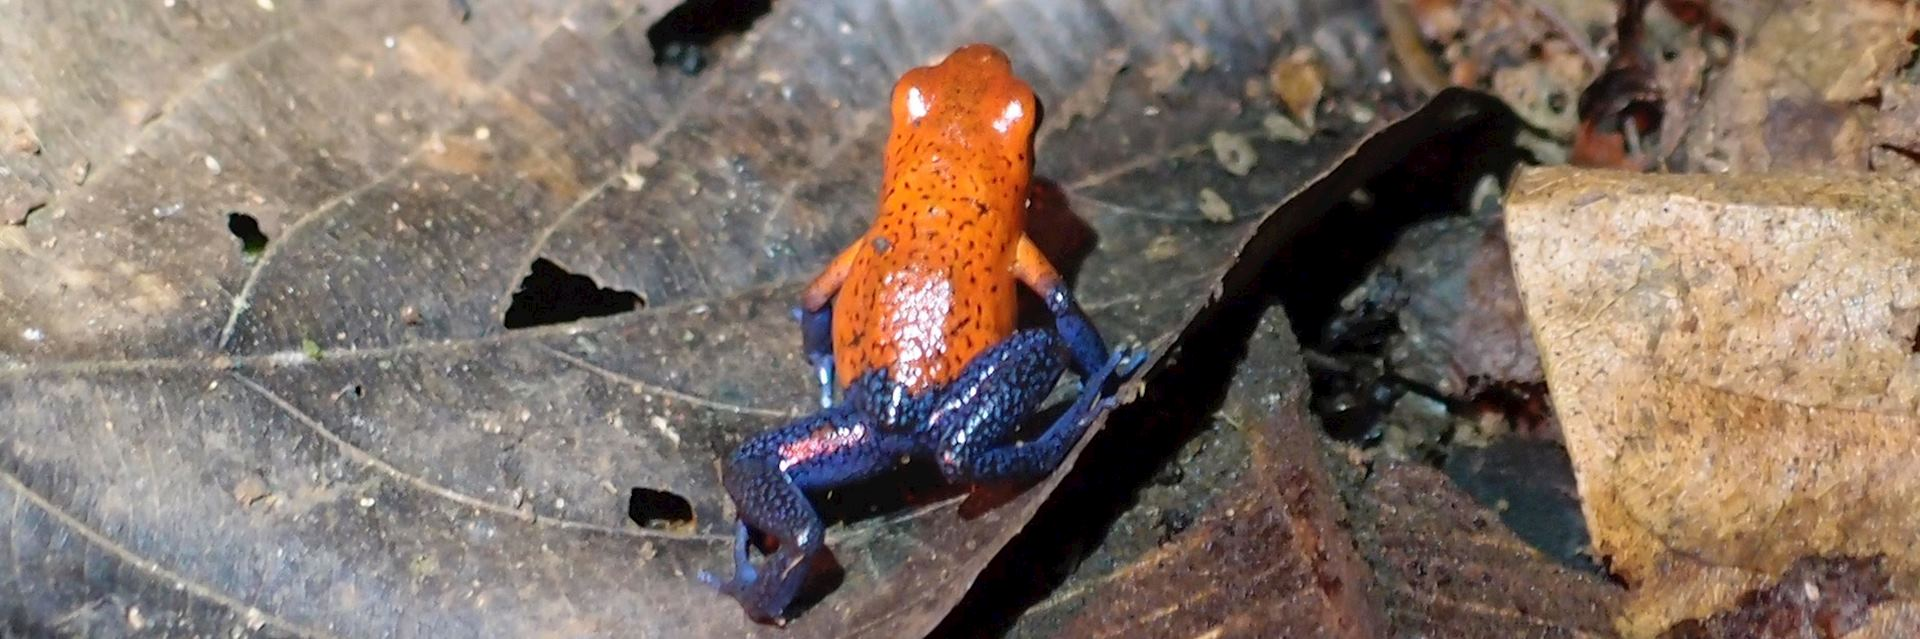 Blue-jeans poison dart frog, Costa Rica